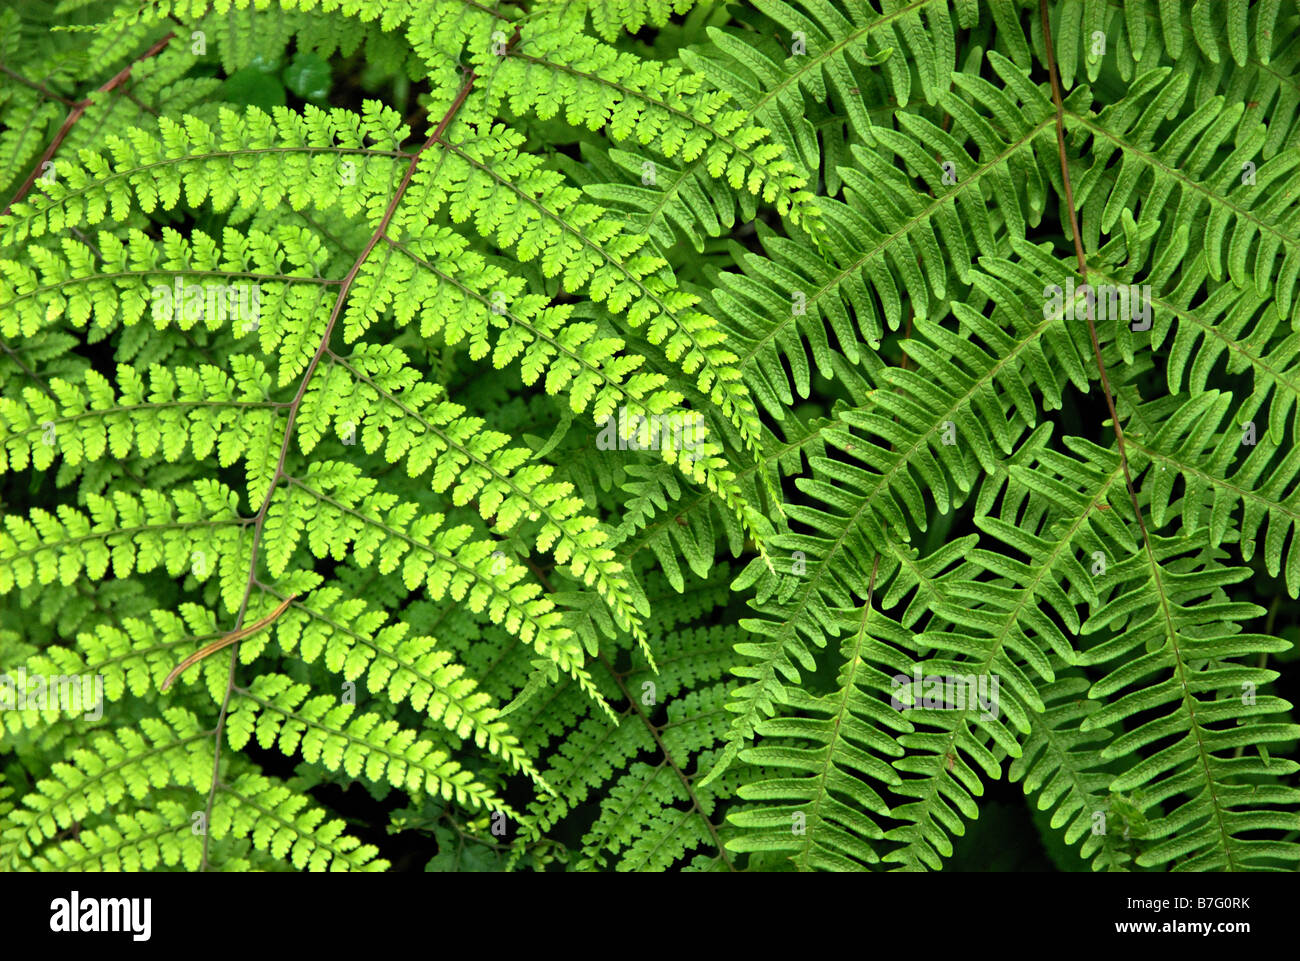 stock photo two types of ferns and a leech stretched out on the lighter frond trying to reach the jiri district nepal - Fern Types